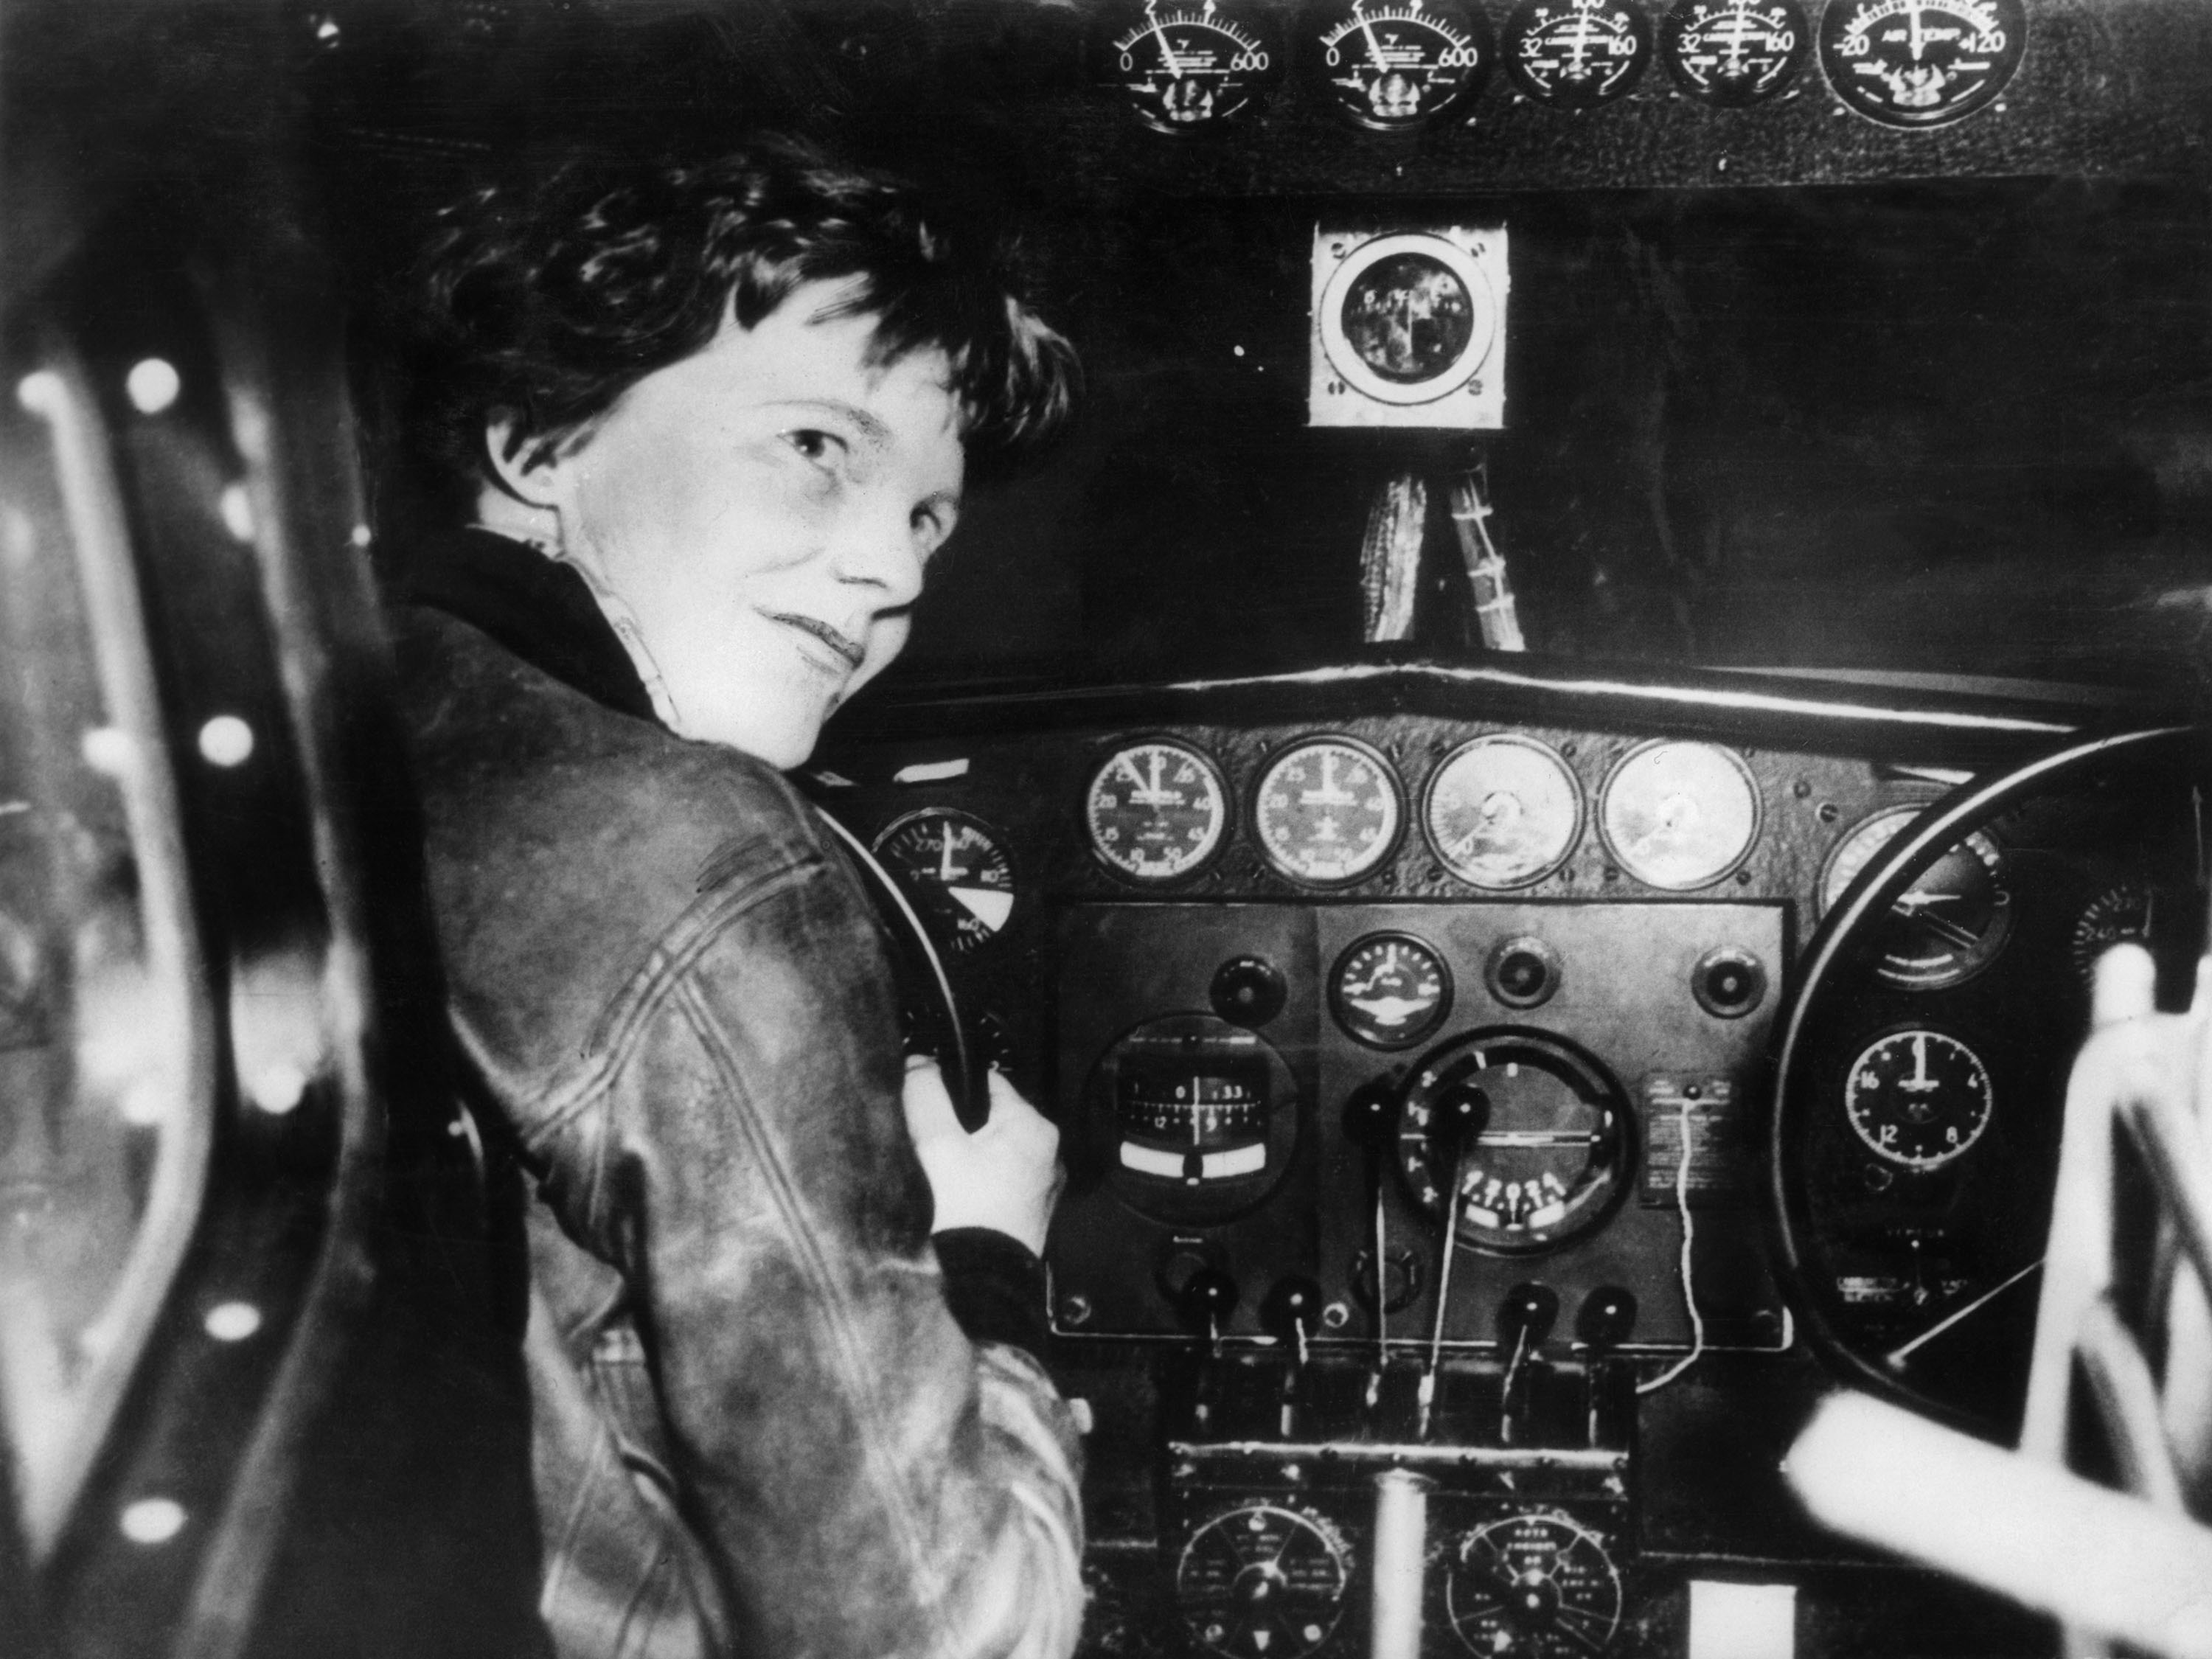 Undated picture taken in the 1930s of American aviator Amelia Earhart, at the controls of her plane.